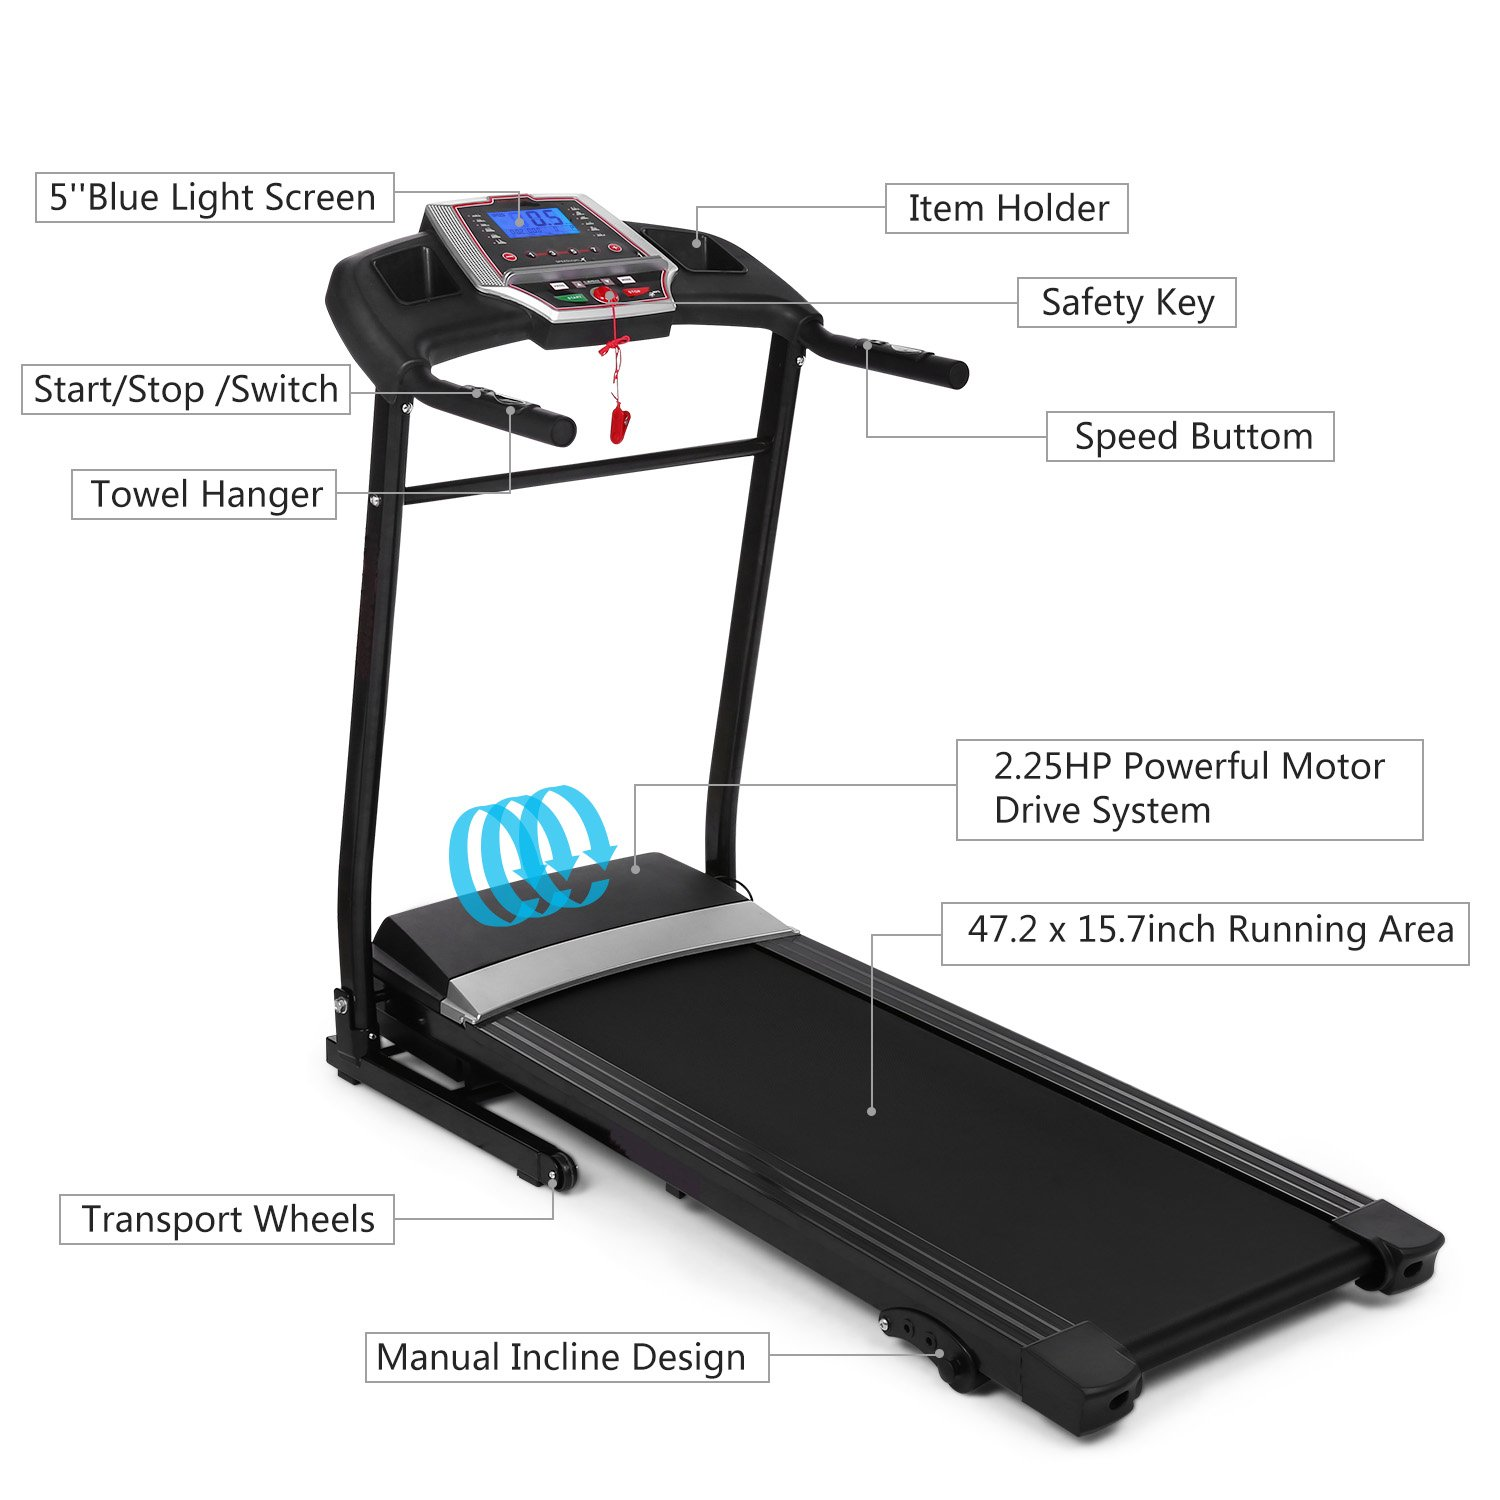 Miageek Fitness Folding Electric Jogging Treadmill with Smartphone APP Control, Walking Running Exercise Machine Incline Trainer Equipment Home Gym US Stock